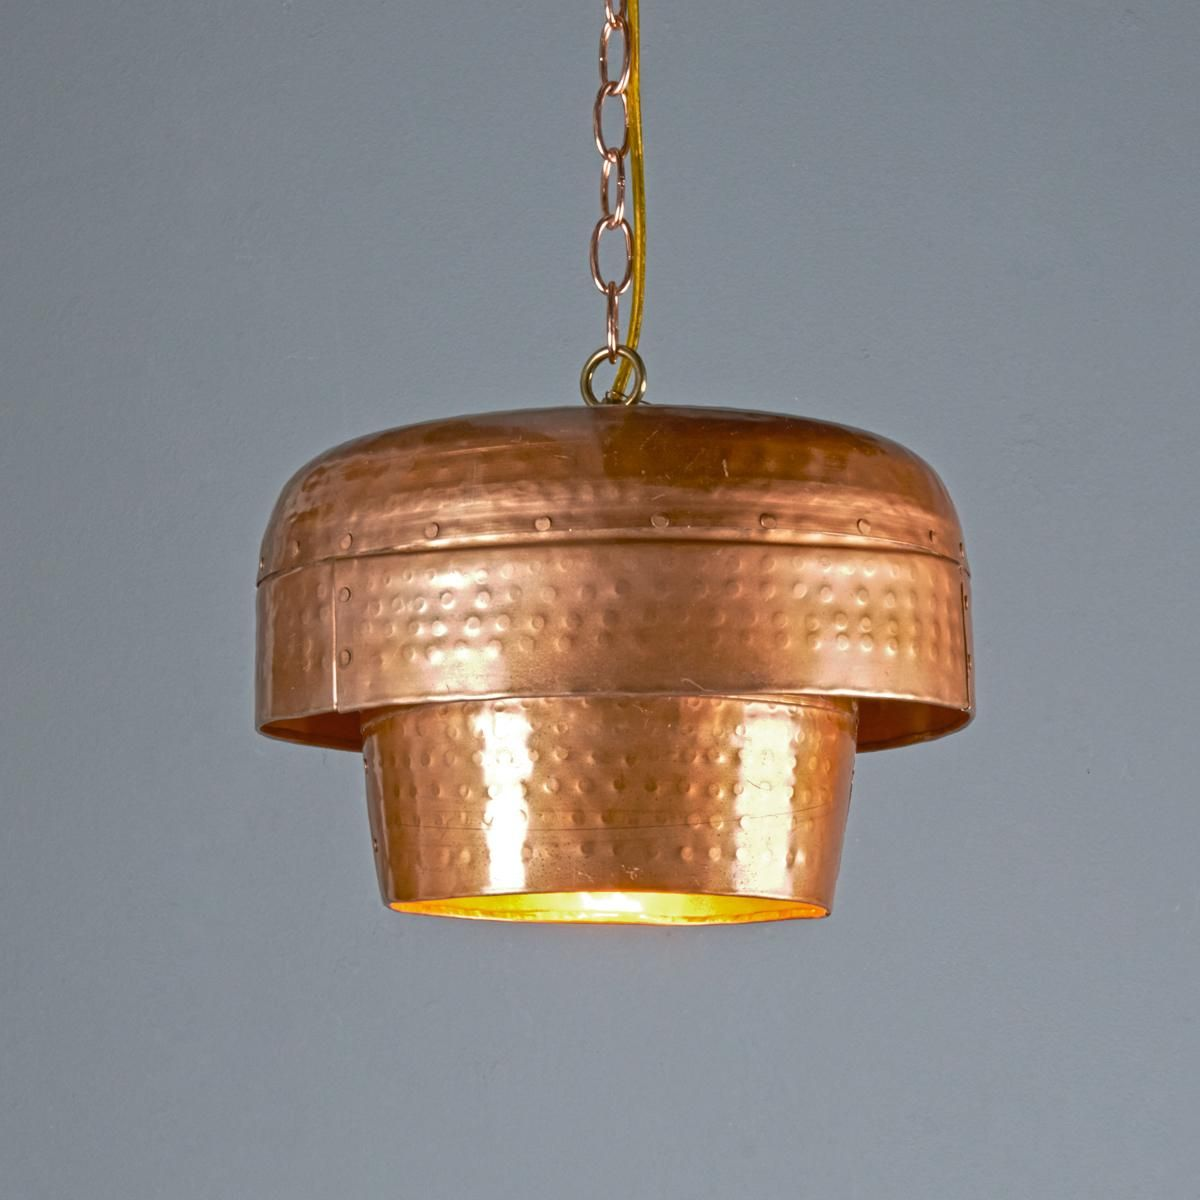 copper pendant light kitchen farmhouse sink tiered bowl a real show